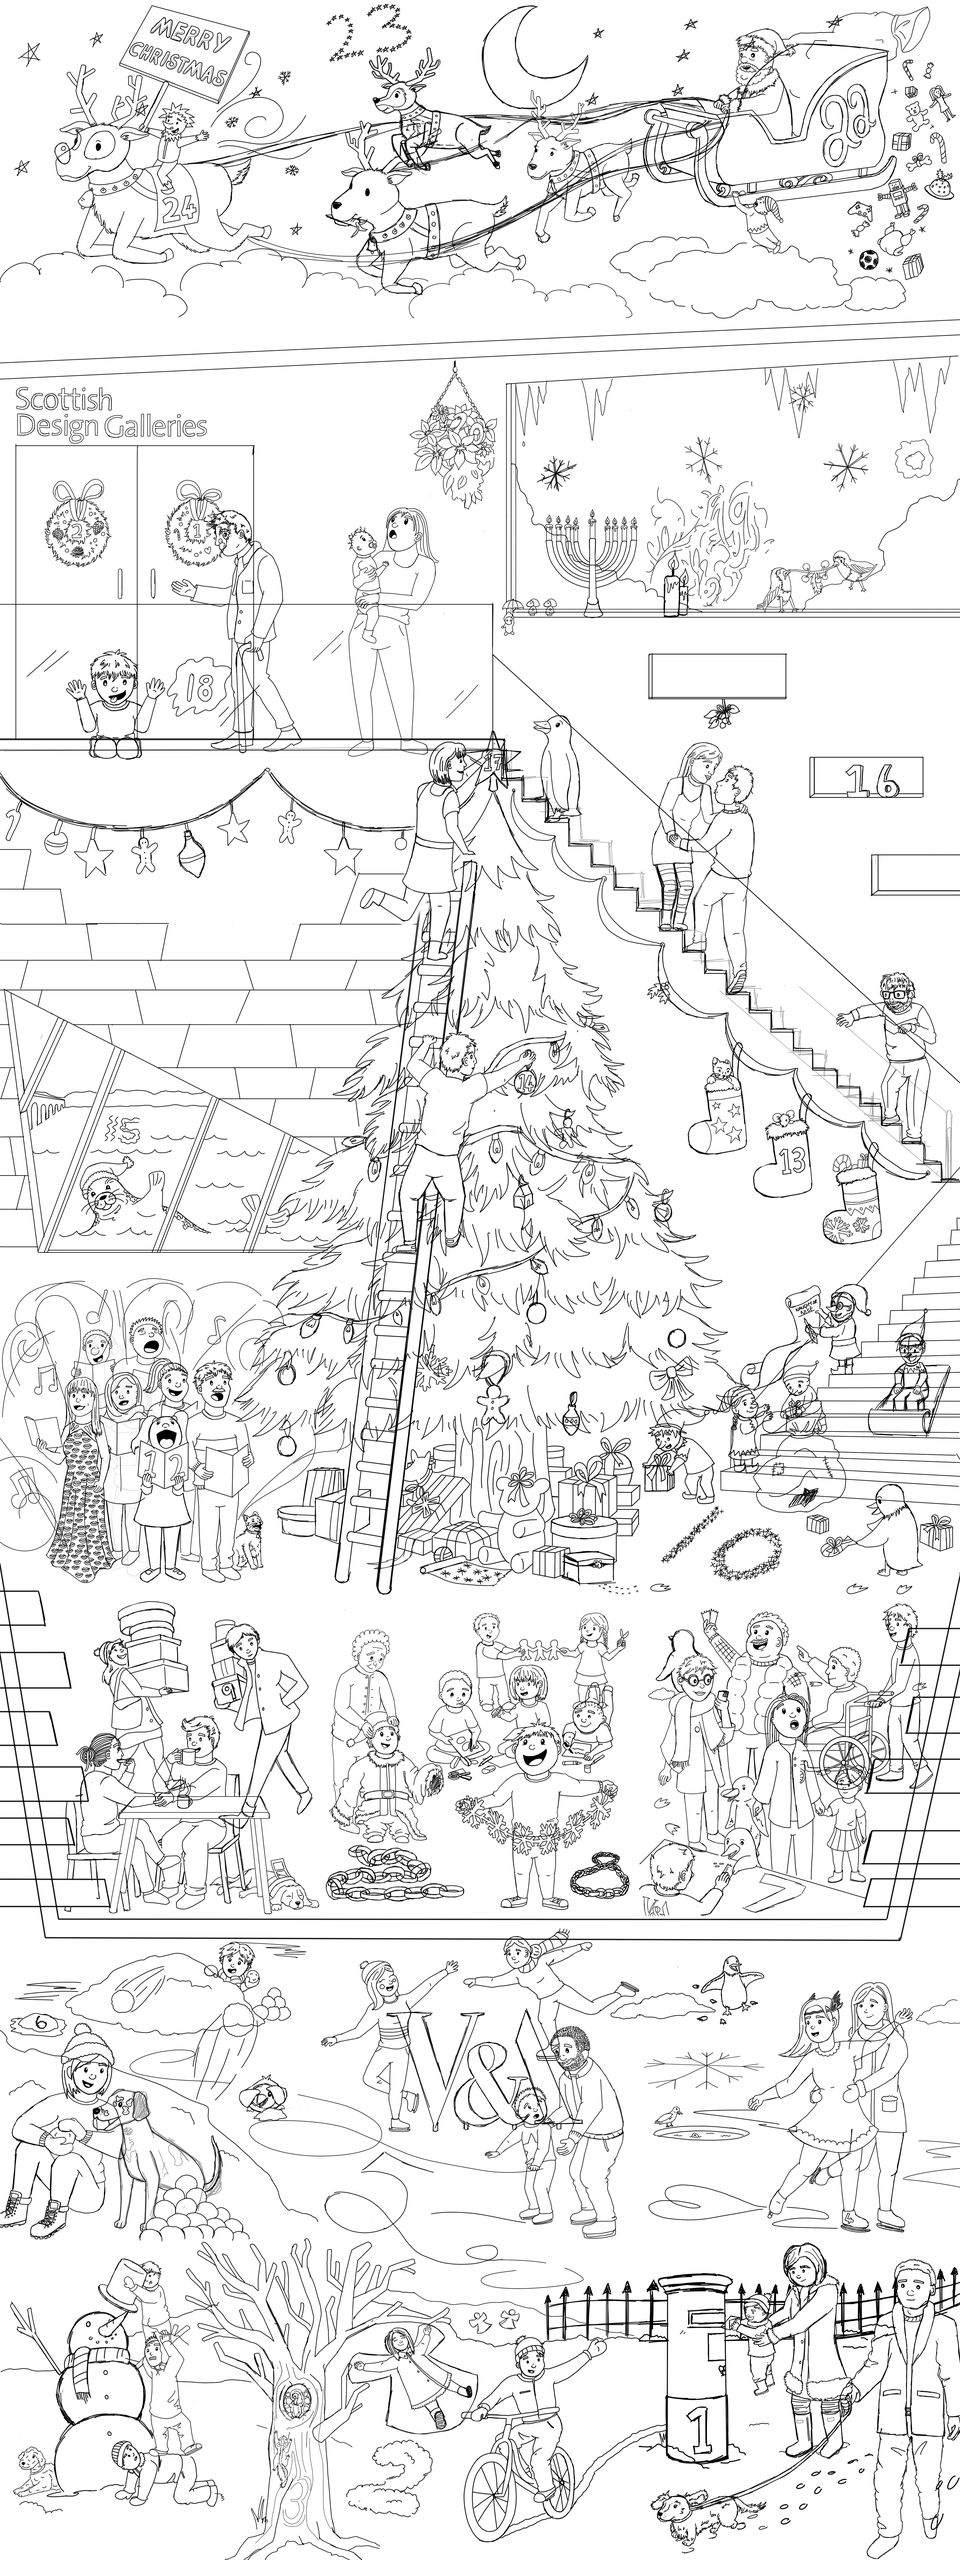 A black and white line illustration of the finished the VADvent piece featuring V&A Dundee in a cutaway style with both inside and outside festive scenes. The image is very much higher than it is wide.